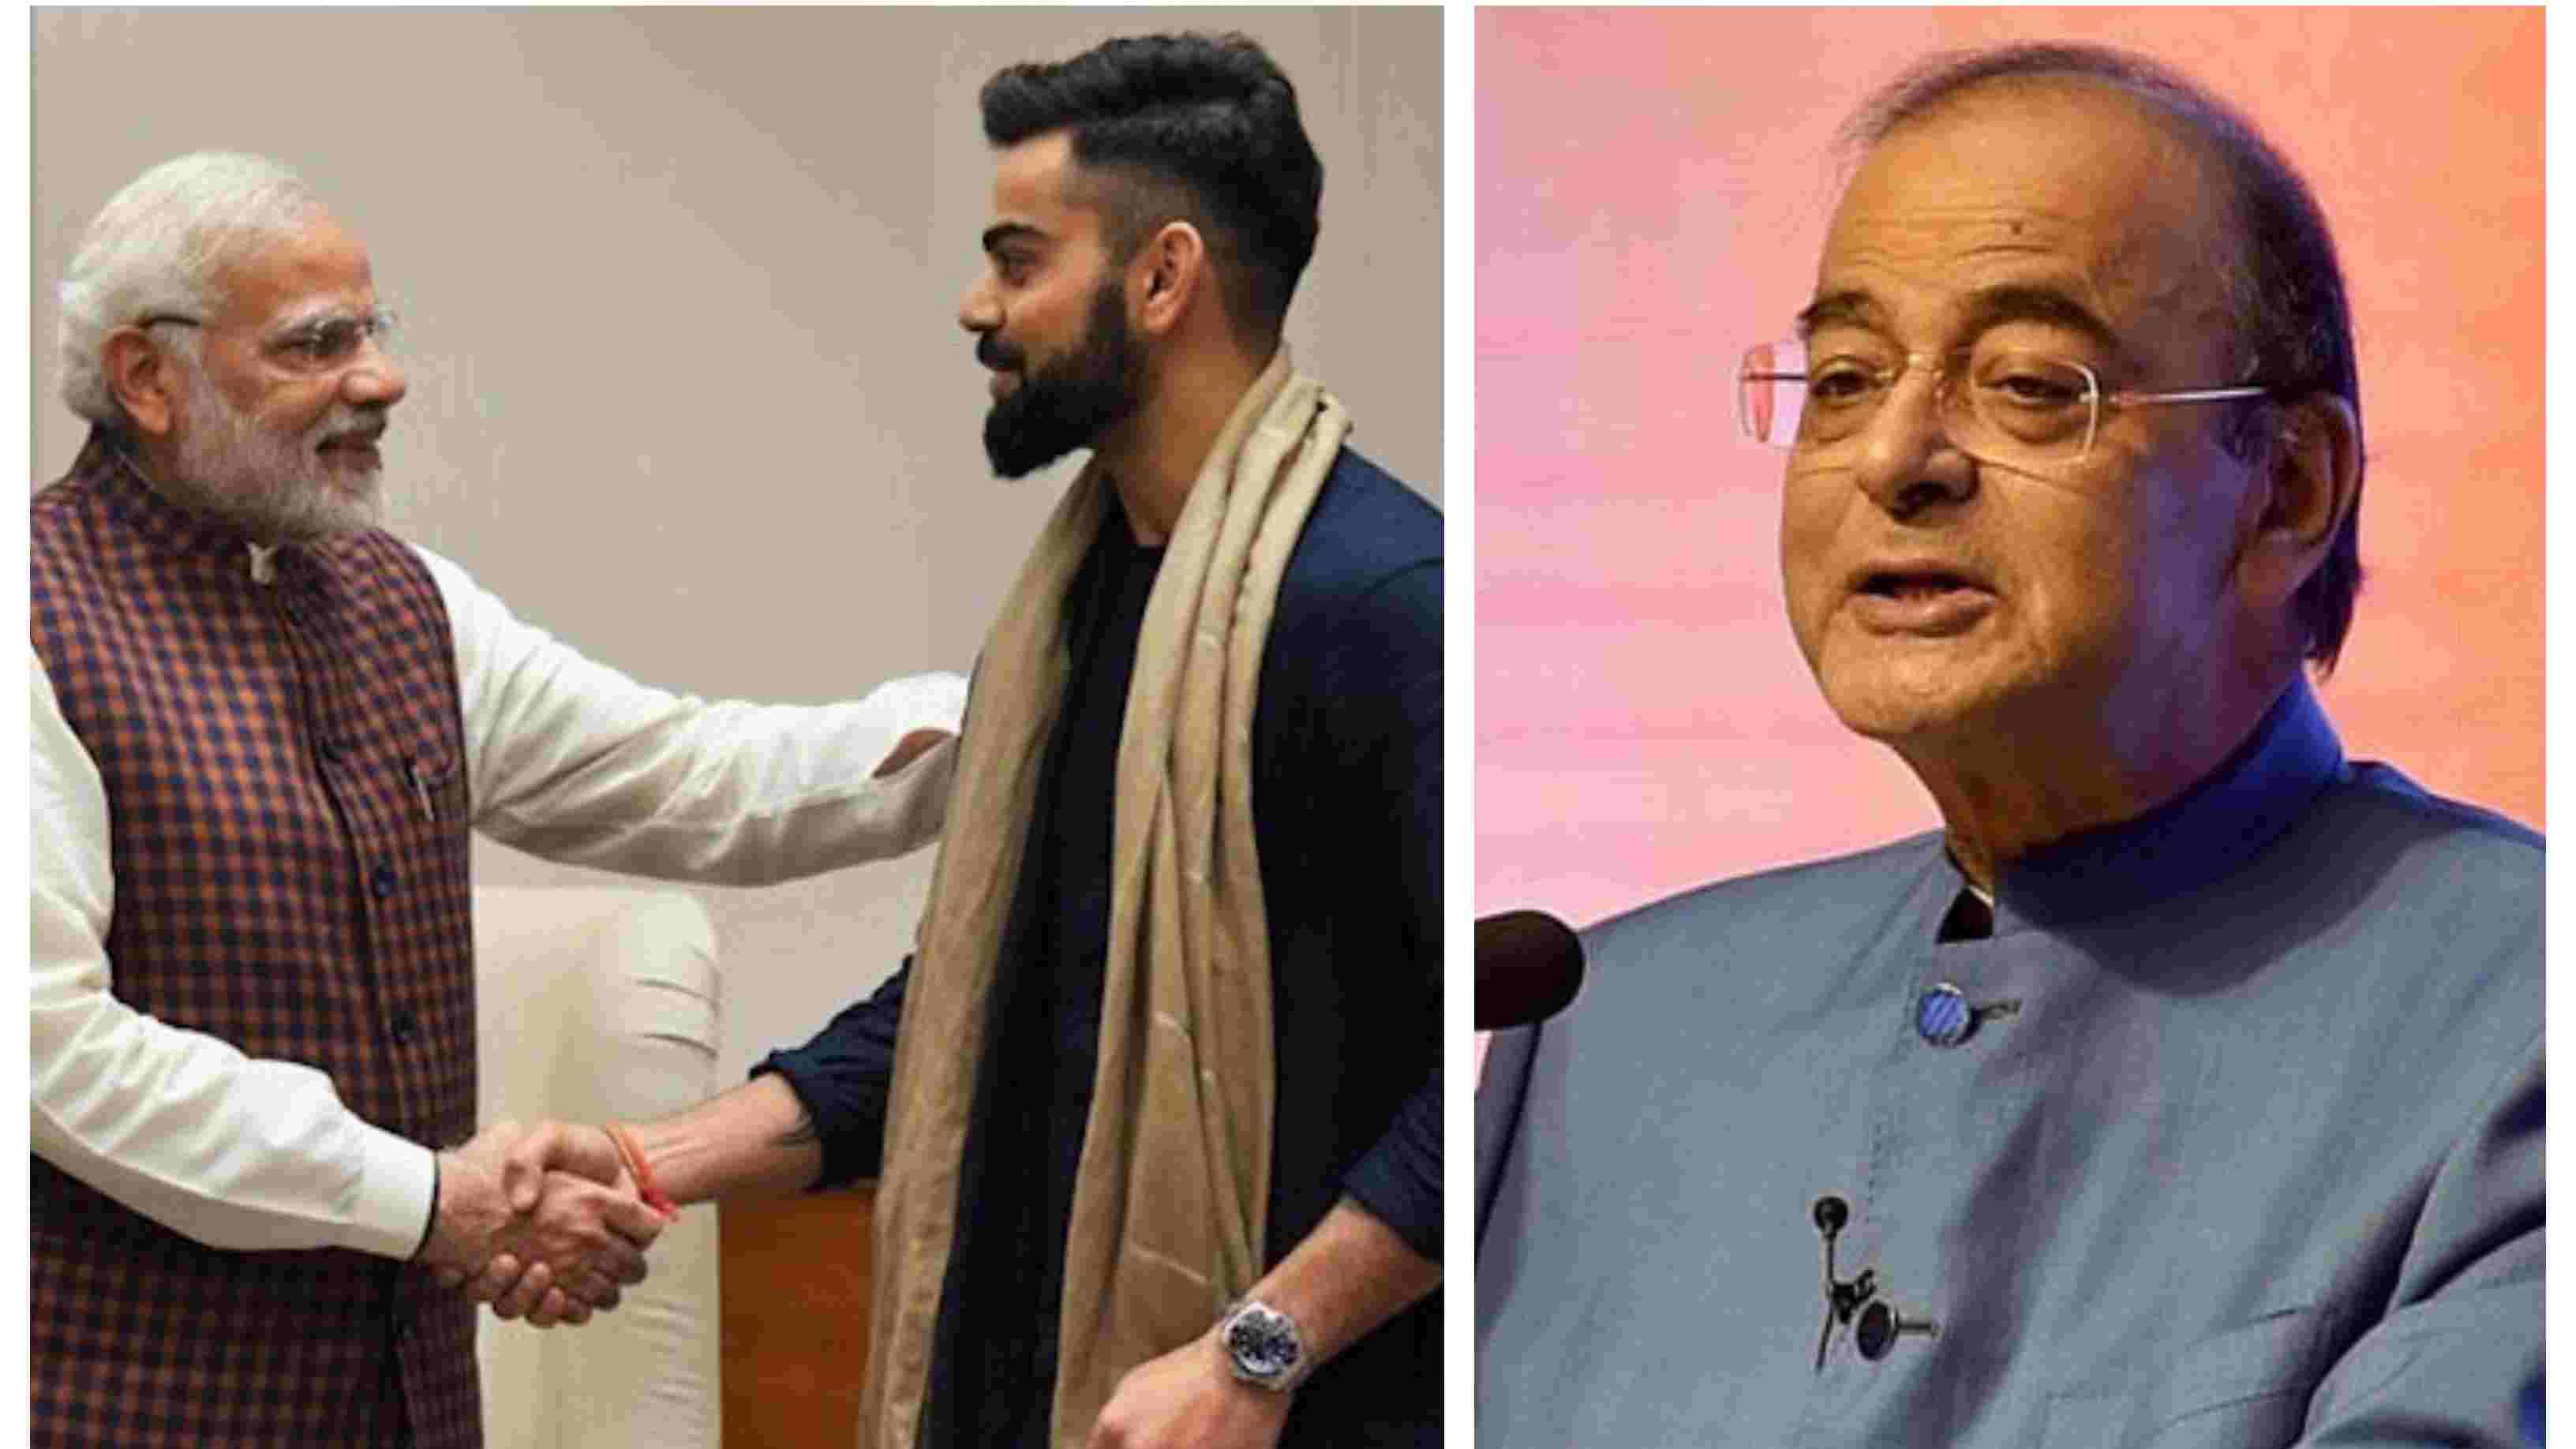 Virat Kohli and PM Modi are near invincible in their respective fields, says Arun Jaitley